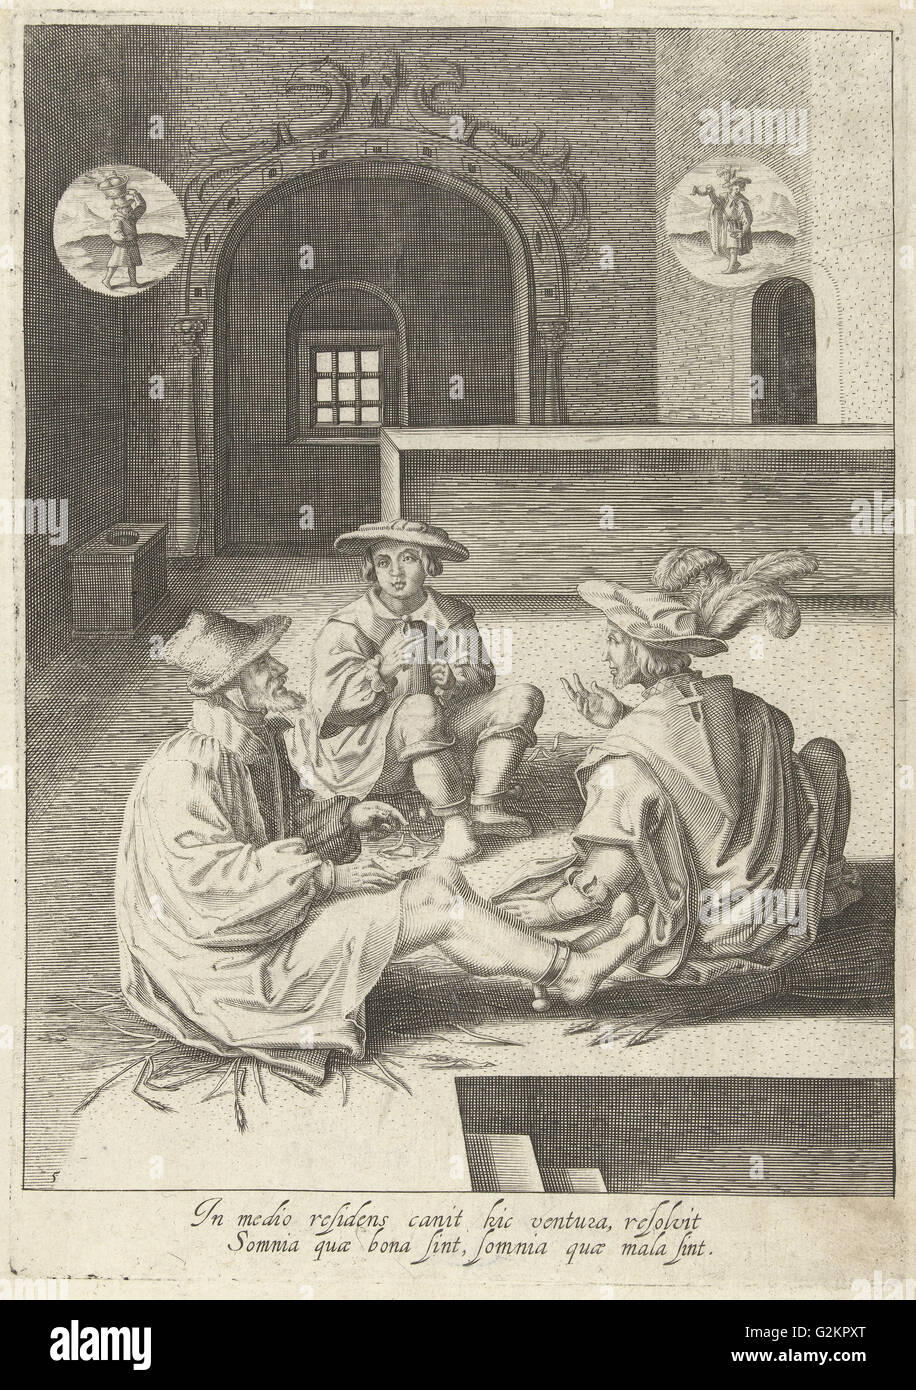 Joseph interprets dreams in prison, Robert de Baudous, Lucas van Leyden, 1591 - 1659 - Stock Image